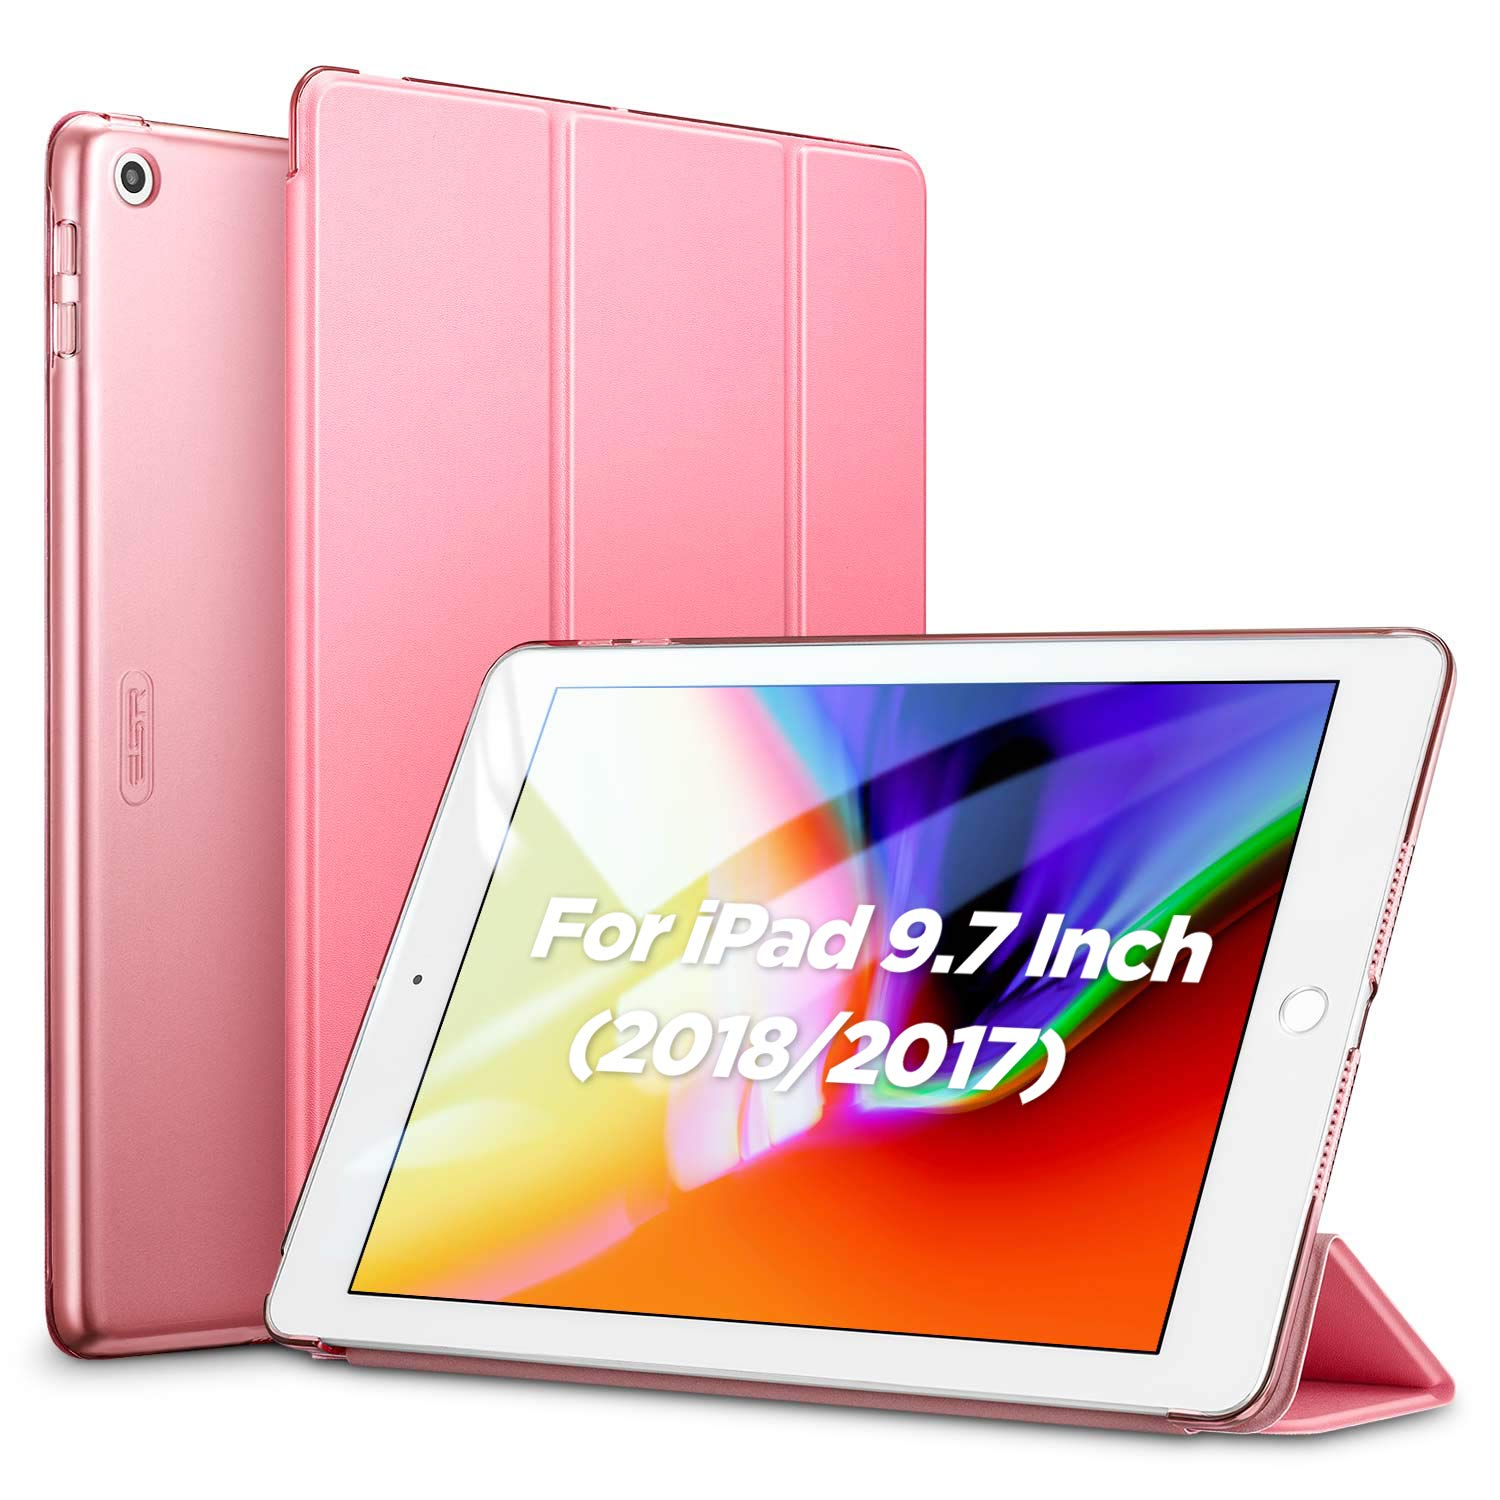 ESR Yippee Trifold Smart Case for iPad 6th Generation 2018/2017 (Not for iPad 10.2) [Lightweight] [Multi-Angle Viewing Stand Case] [Auto Sleep/Wake] for iPad 5th/6th Gen - Pink